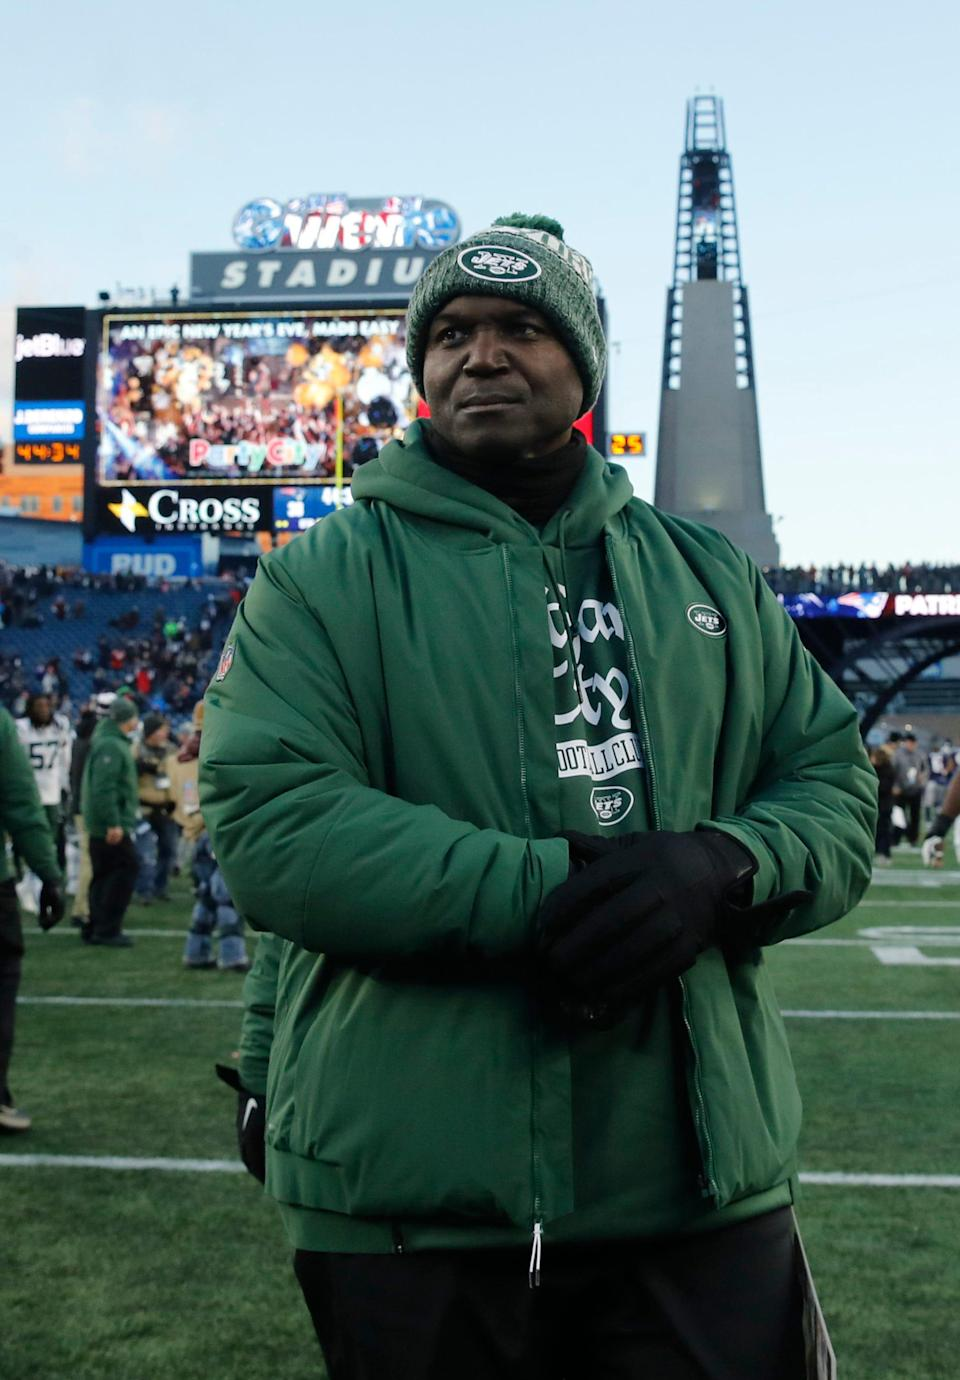 Jets head coach Todd Bowles exits the field after the game against the Patriots at Gillette Stadium, Dec. 30, 2018 in Foxborough, Mass.